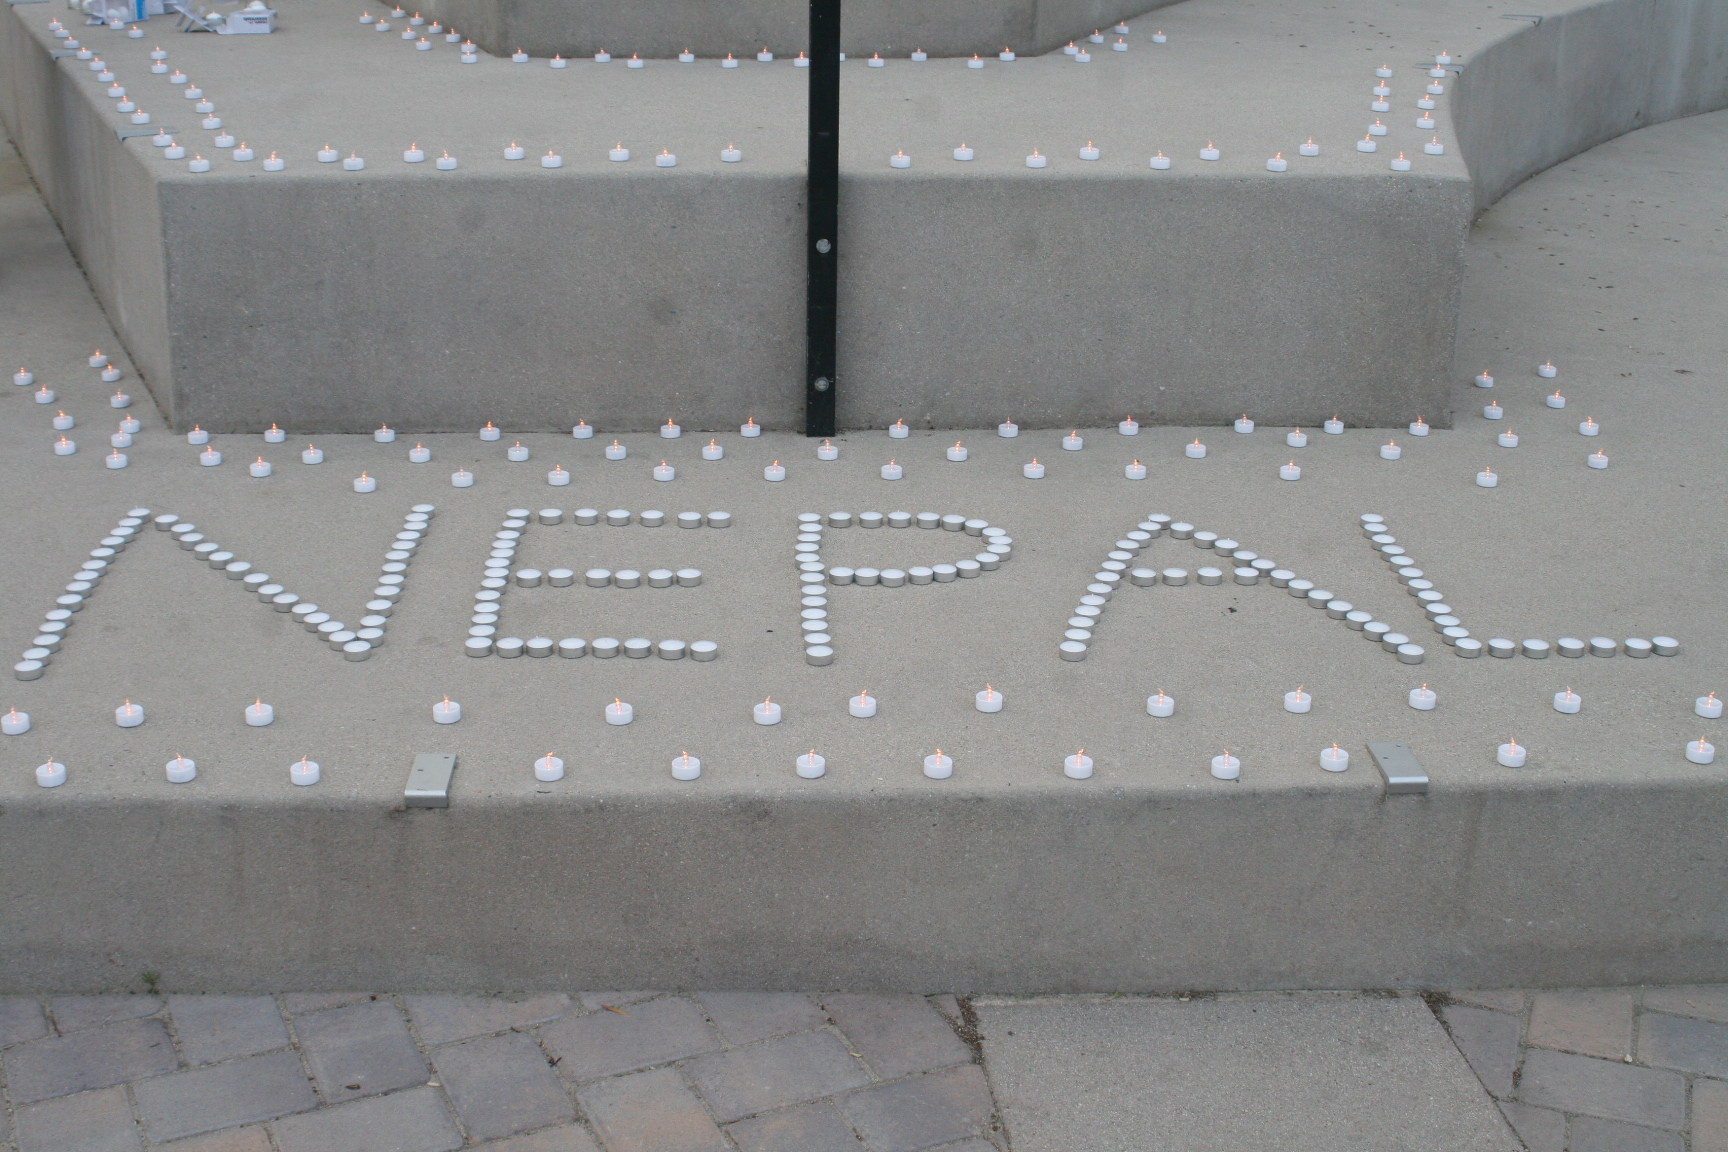 Vigil held for Nepalese earthquake victims